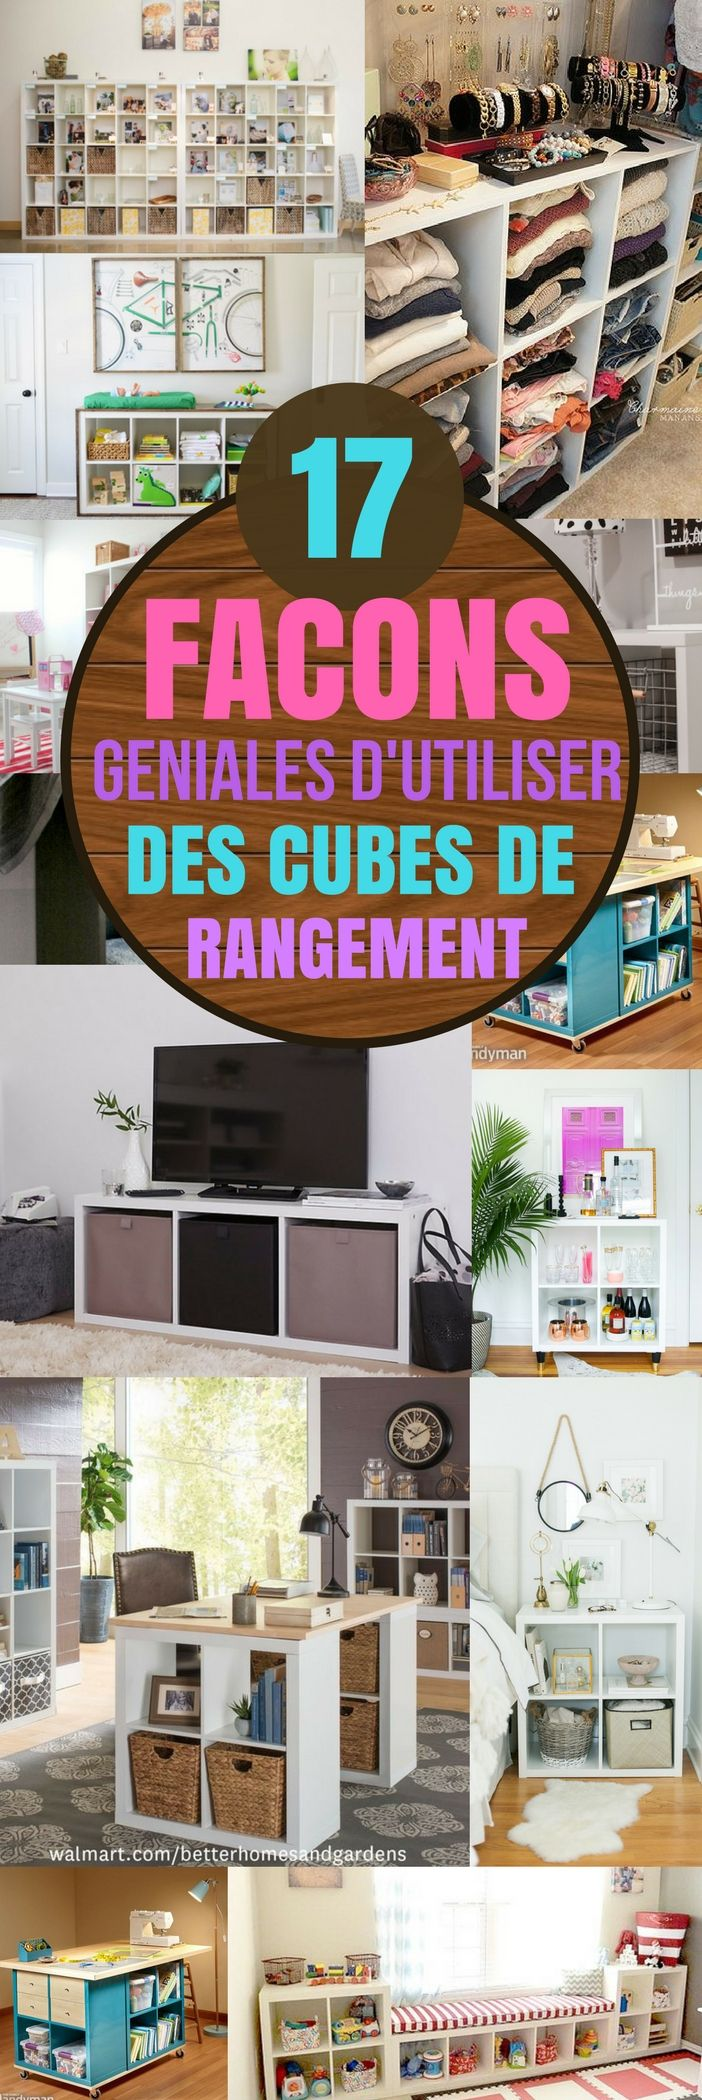 best 25 cubes ideas on pinterest diy storage cubes. Black Bedroom Furniture Sets. Home Design Ideas